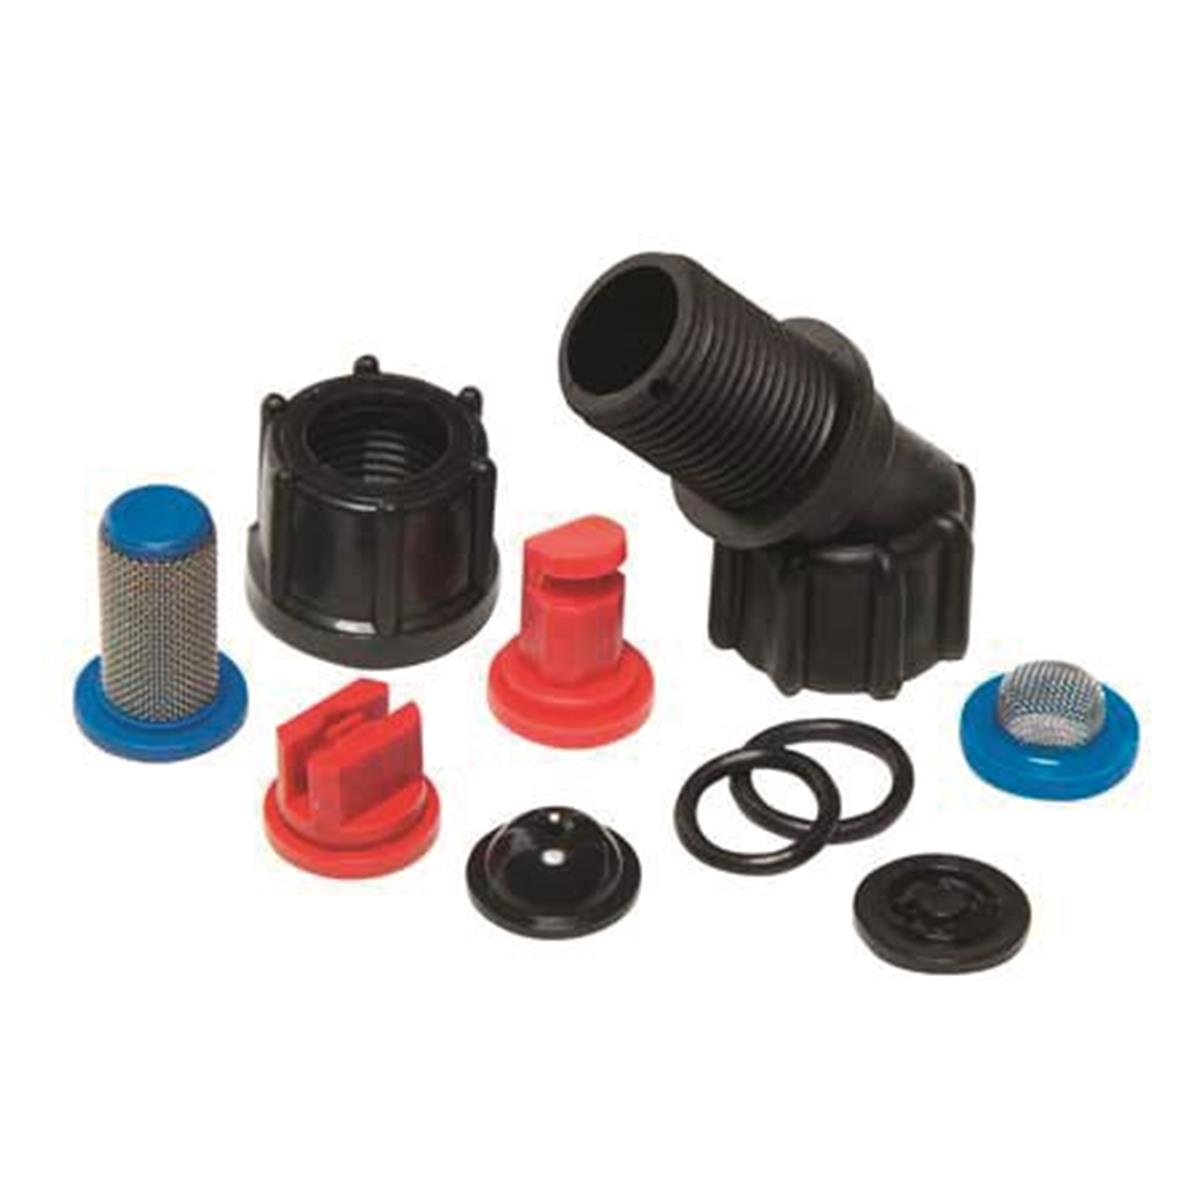 Solo® Sprayer Elbow and Nozzle Assortment